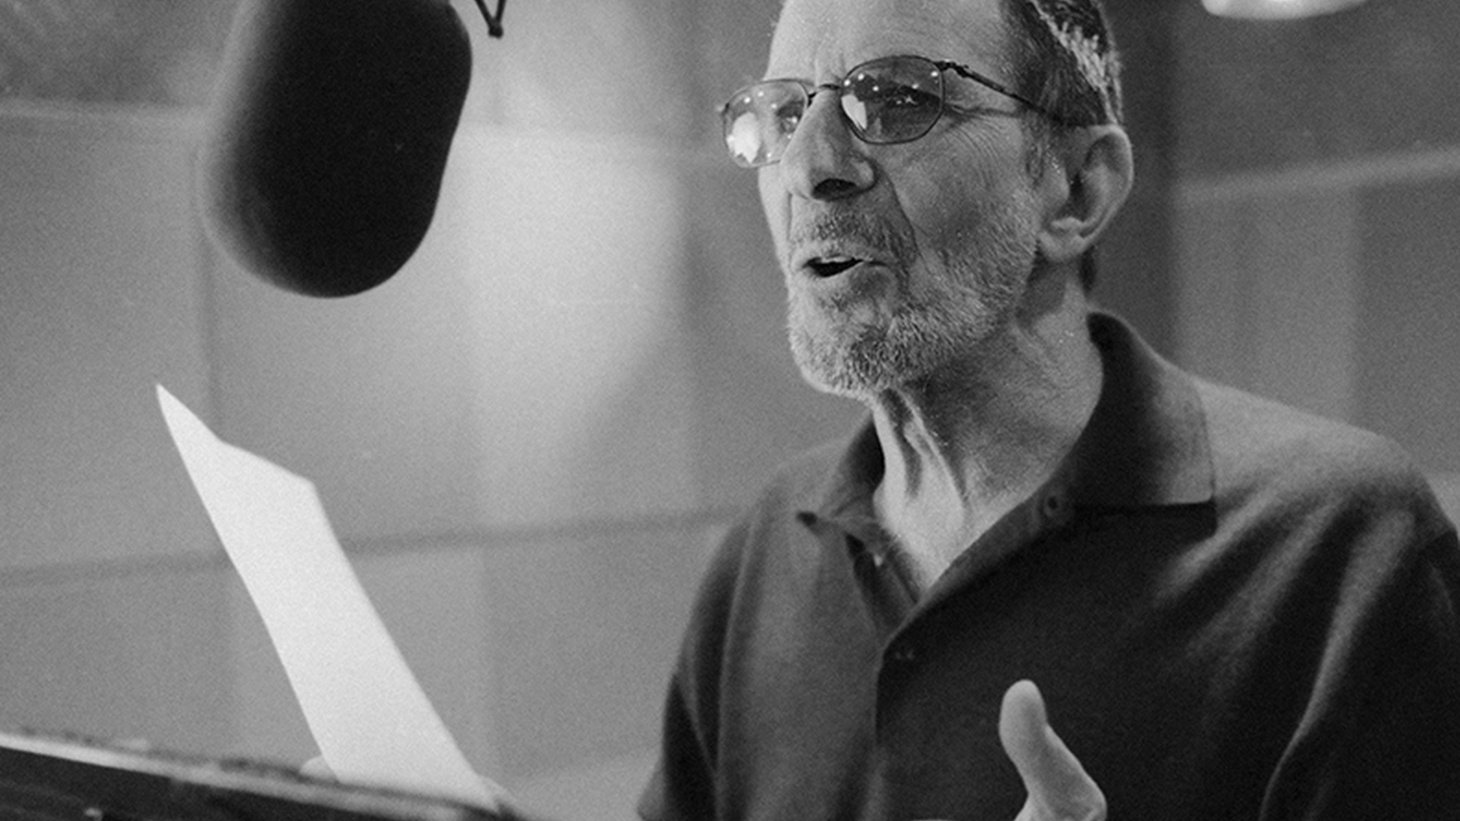 We look at the life and work of Star Trek actor Leonard Nimoy, who died today in Los Angeles of lung disease at 83. Also, two American skiers won the gold and bronze medals this week at the World Championships of Nordic Skiing. Why is their victory so significant, and such an upset to the sport of cross-country skiing?